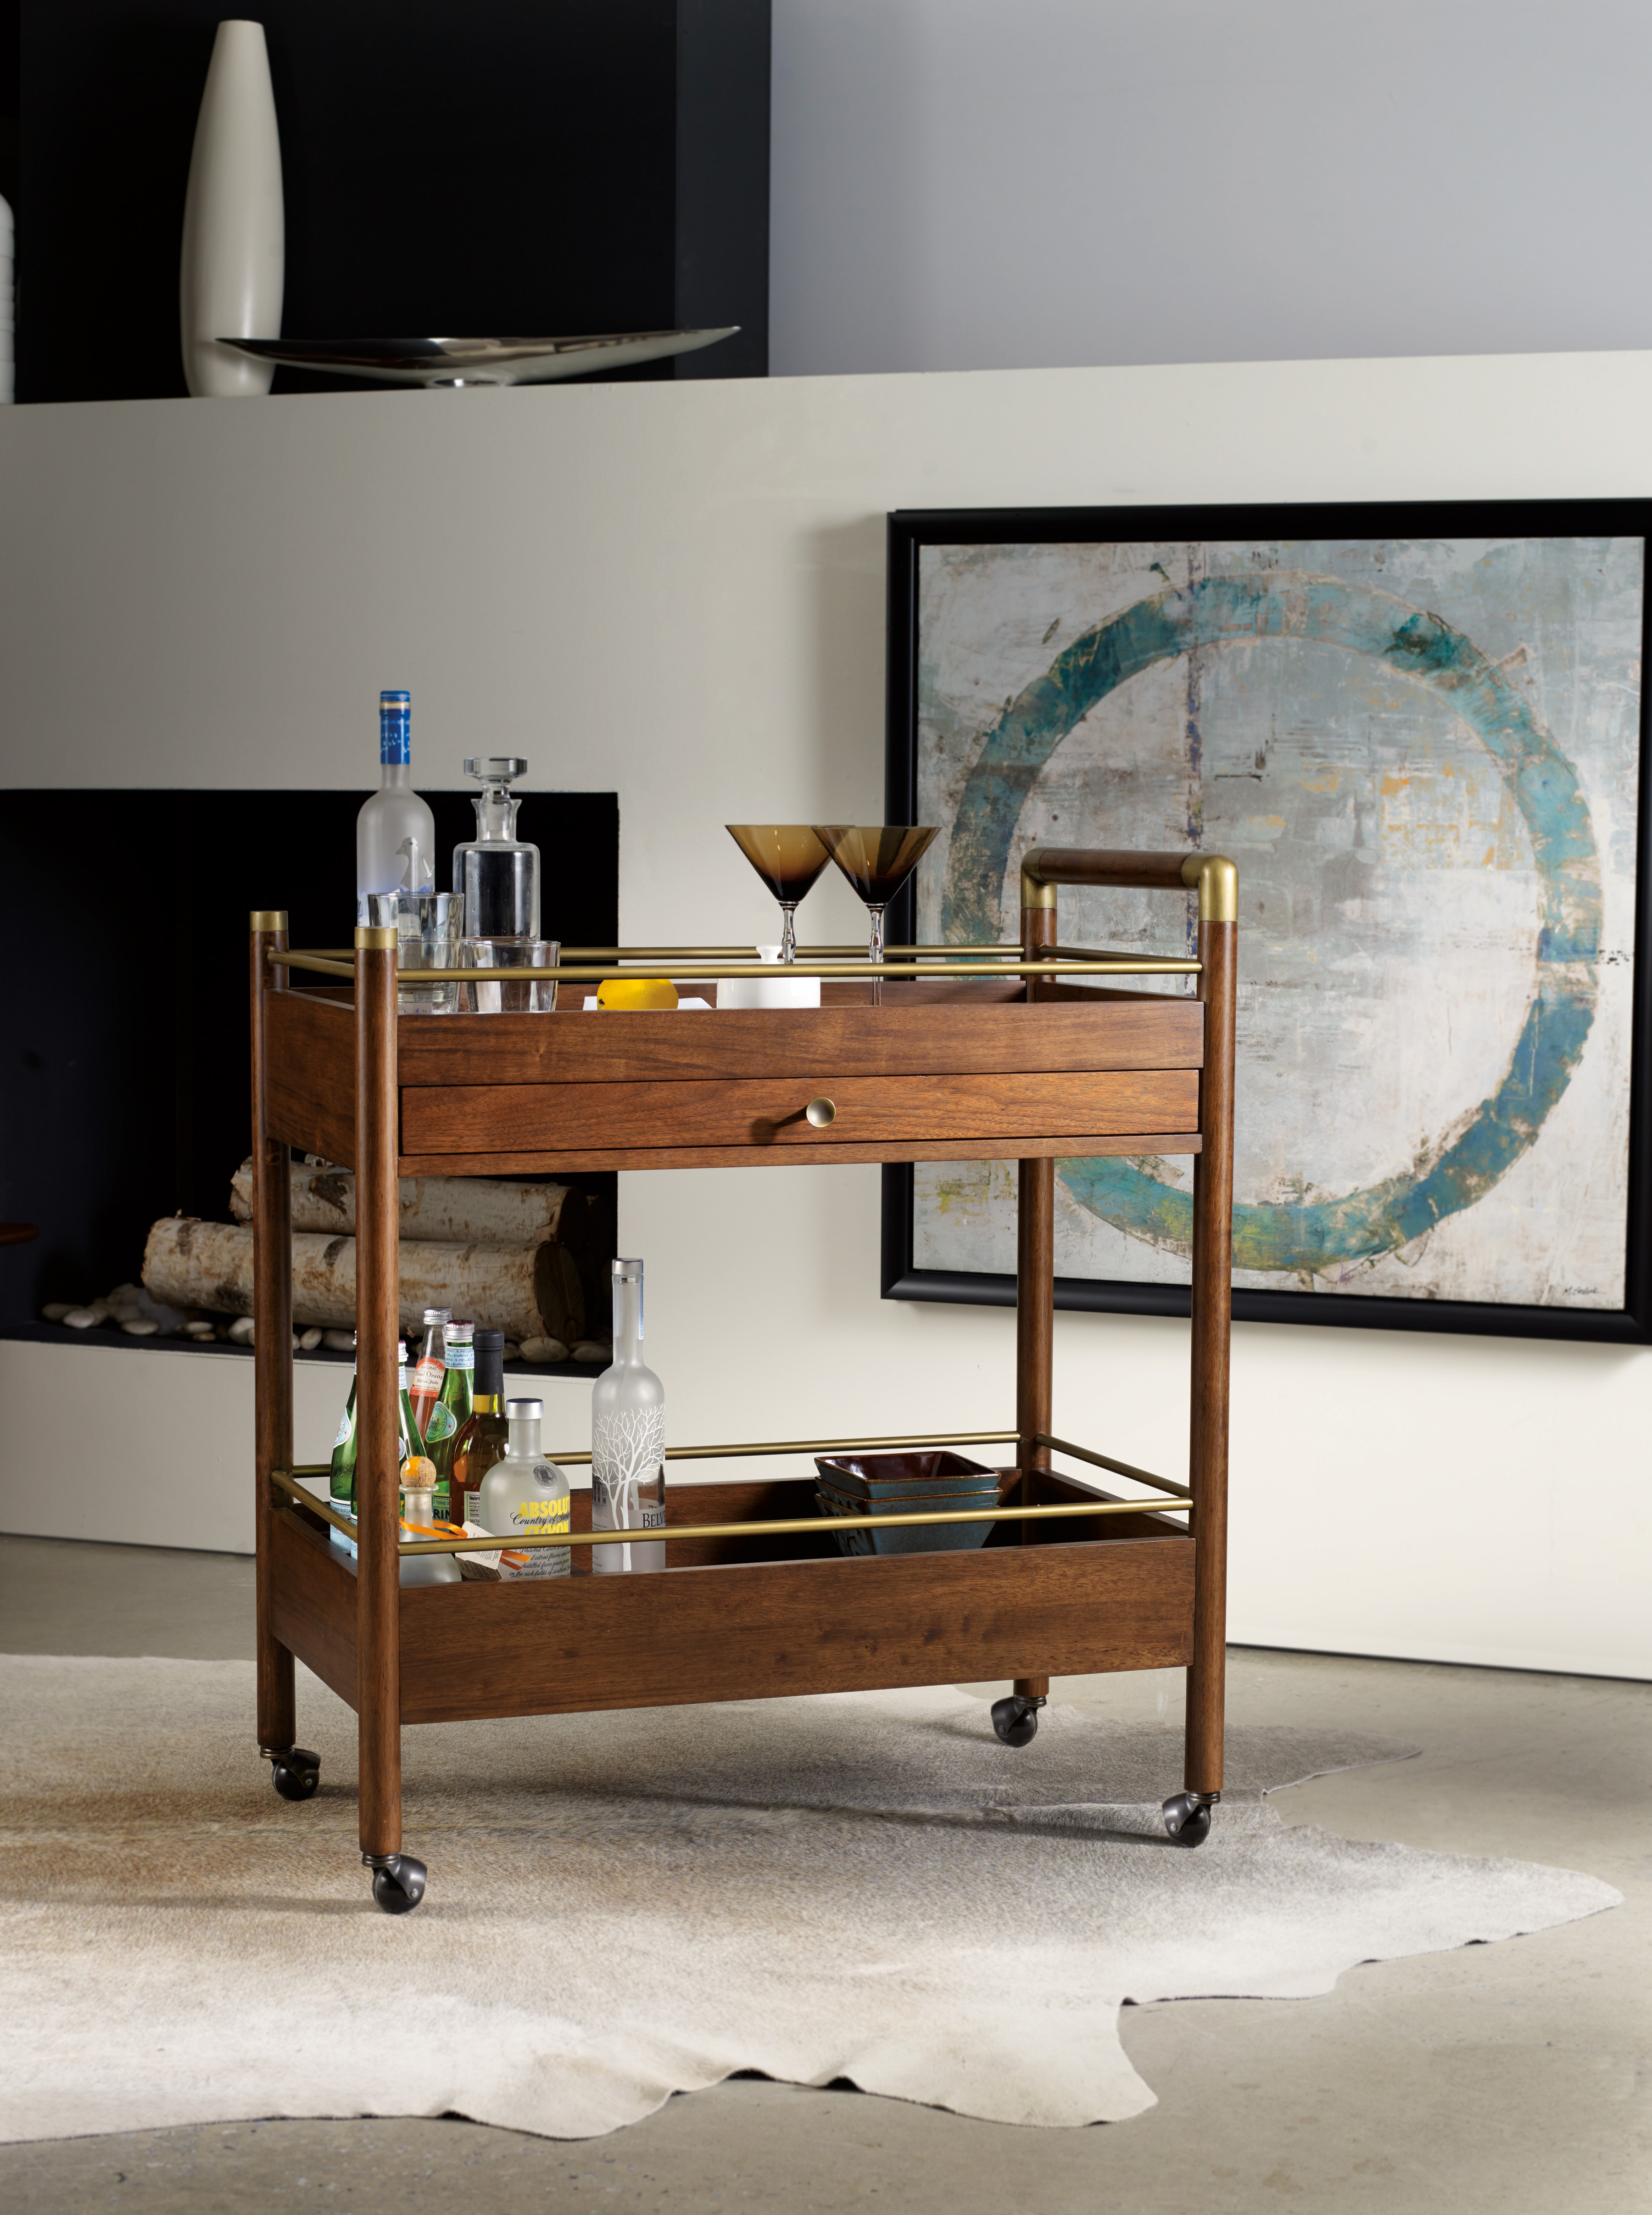 Don't have the room or resources for a luxury bar in your home? I have a simple solution you will love! - McNabb & Risley